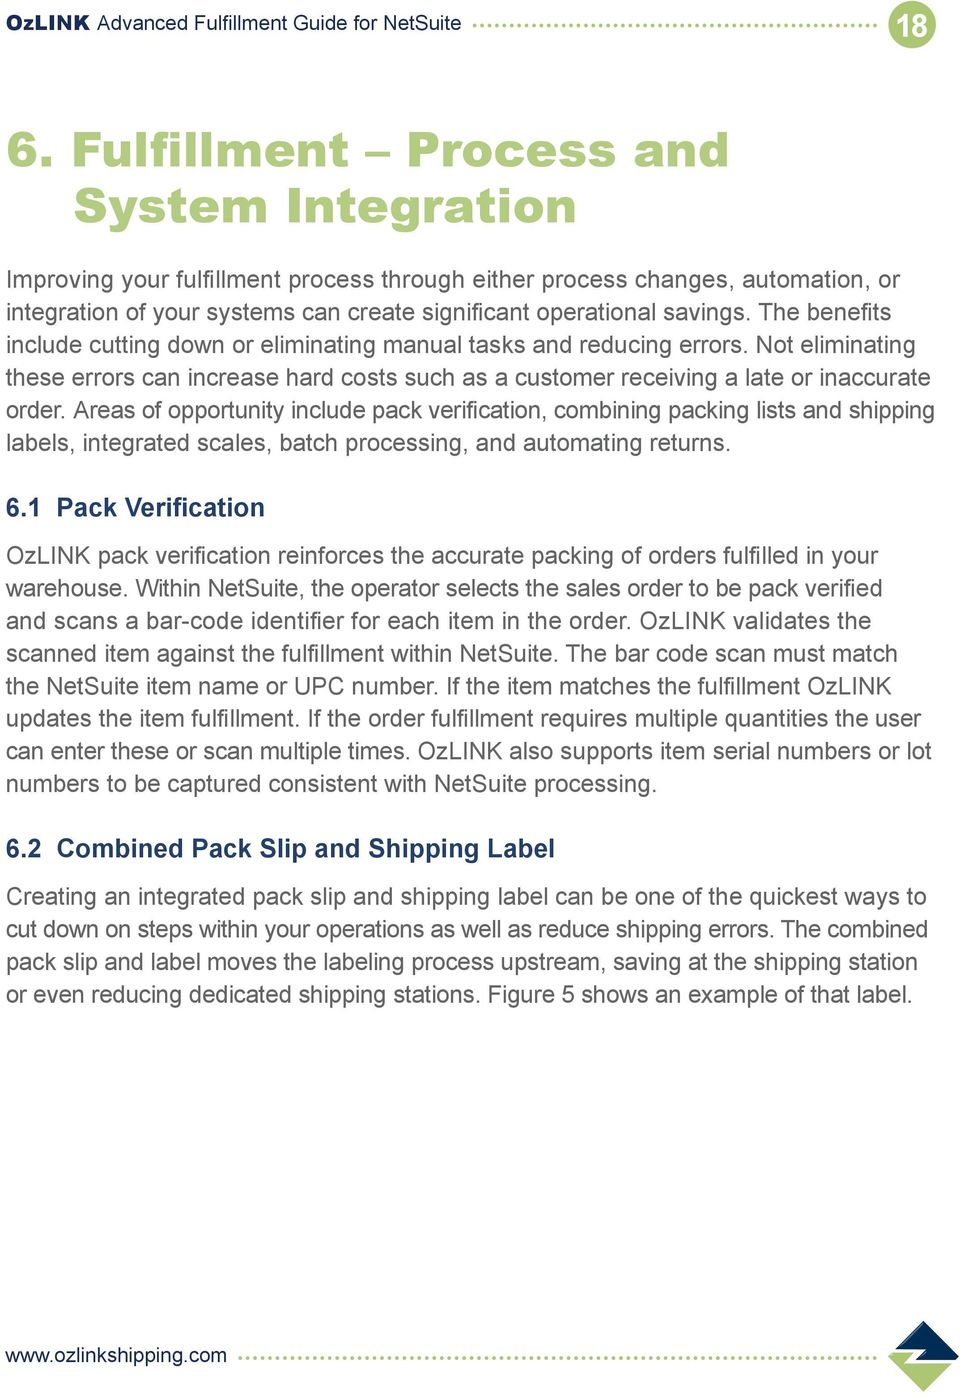 ozlink advanced fulfillment guide for netsuite pdf not eliminating these errors can increase hard costs such as a customer receiving a late or 20 19 packing slip